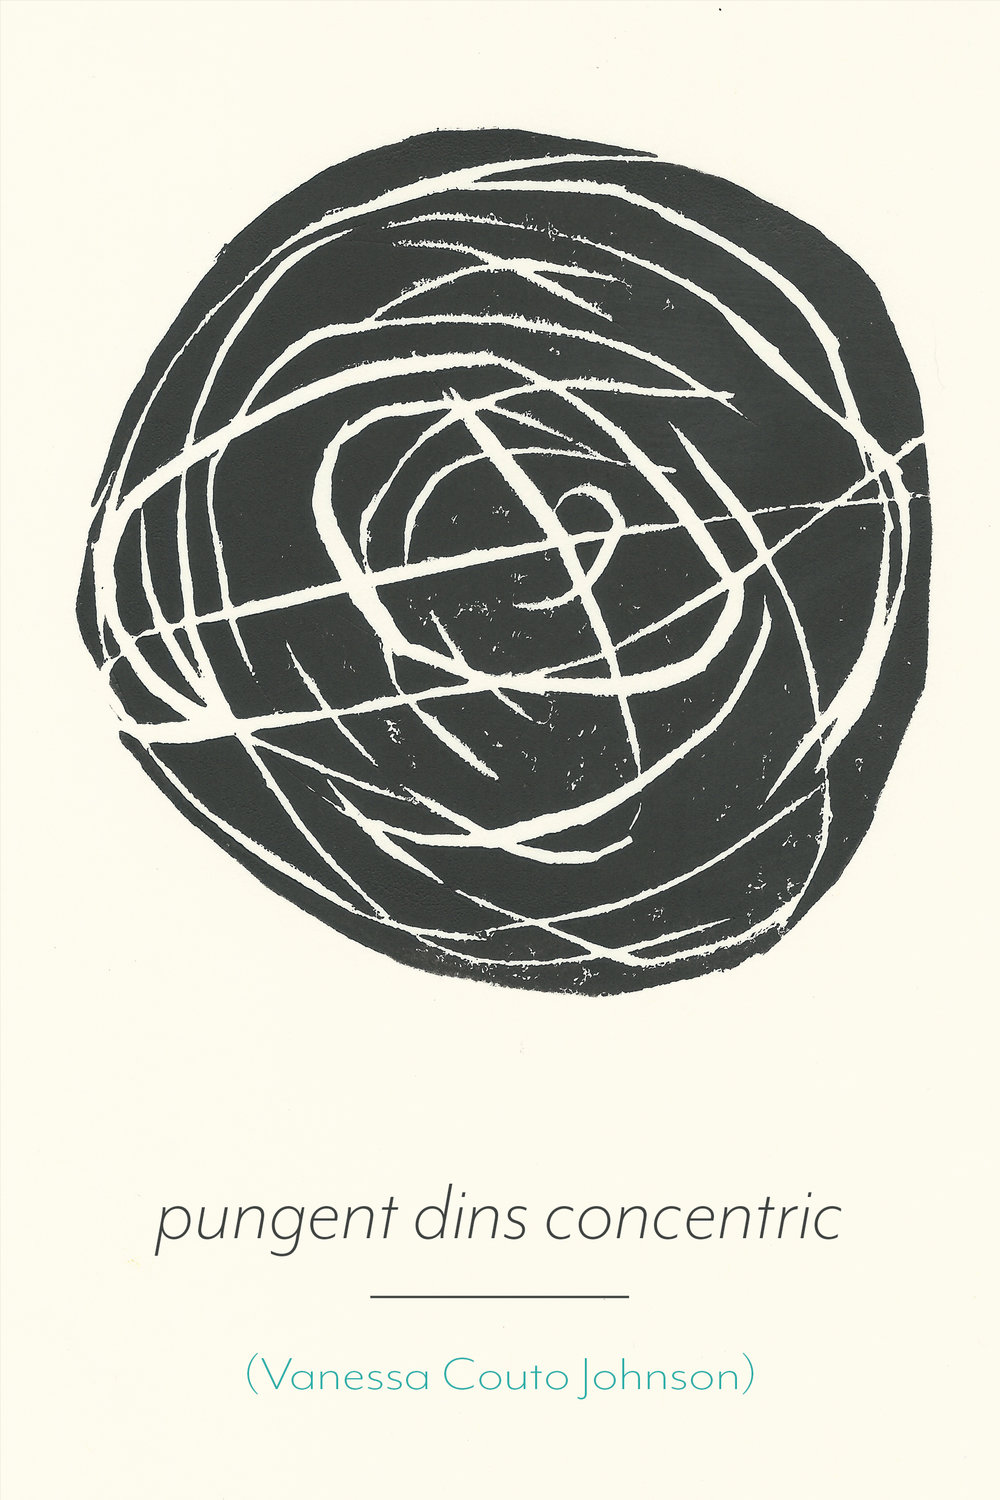 pungent dins concentric poetry by Vanessa Couto Johnson - Release Date December 4th